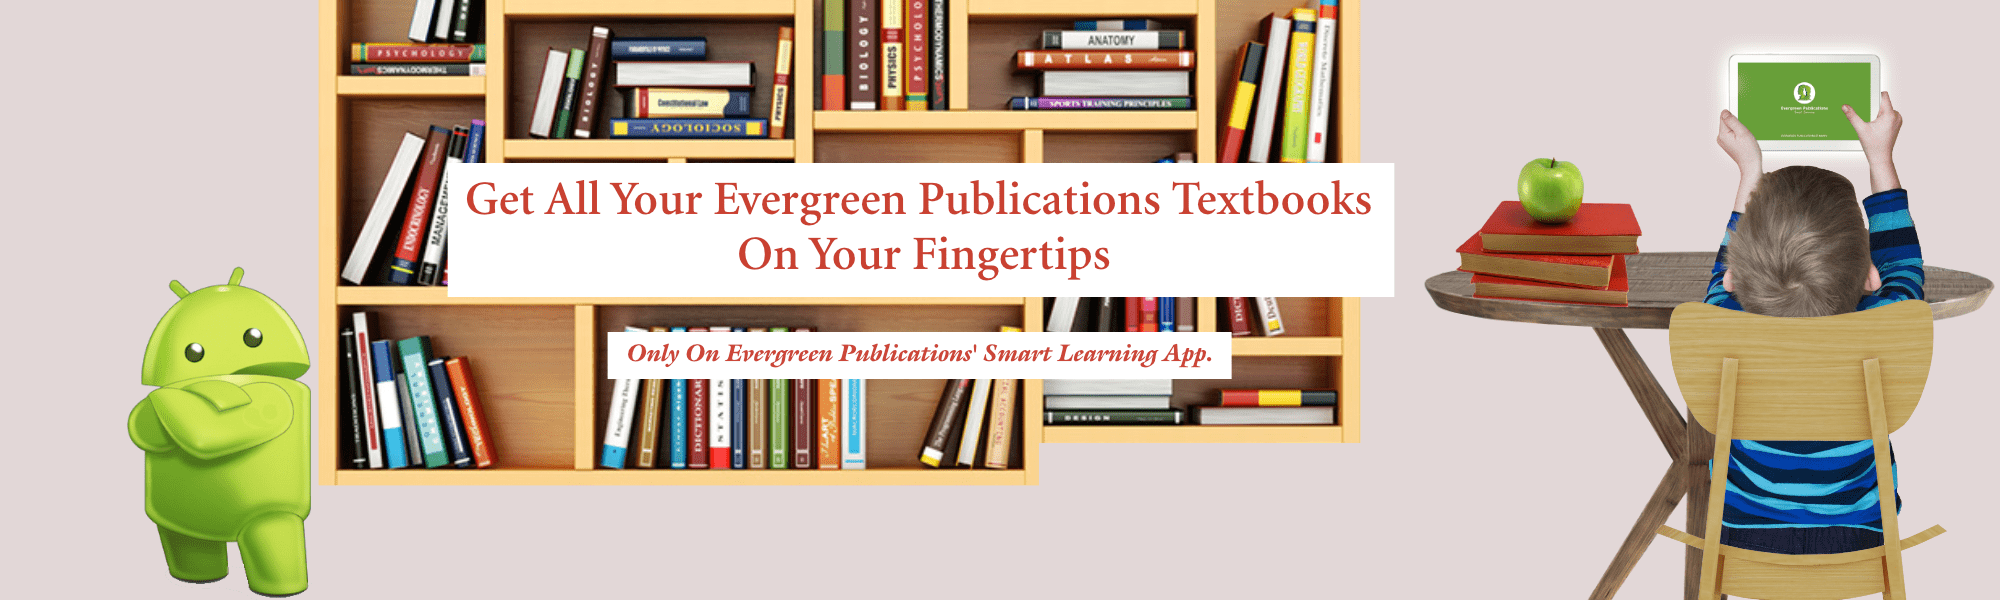 Evergreen Publications India Ltd.